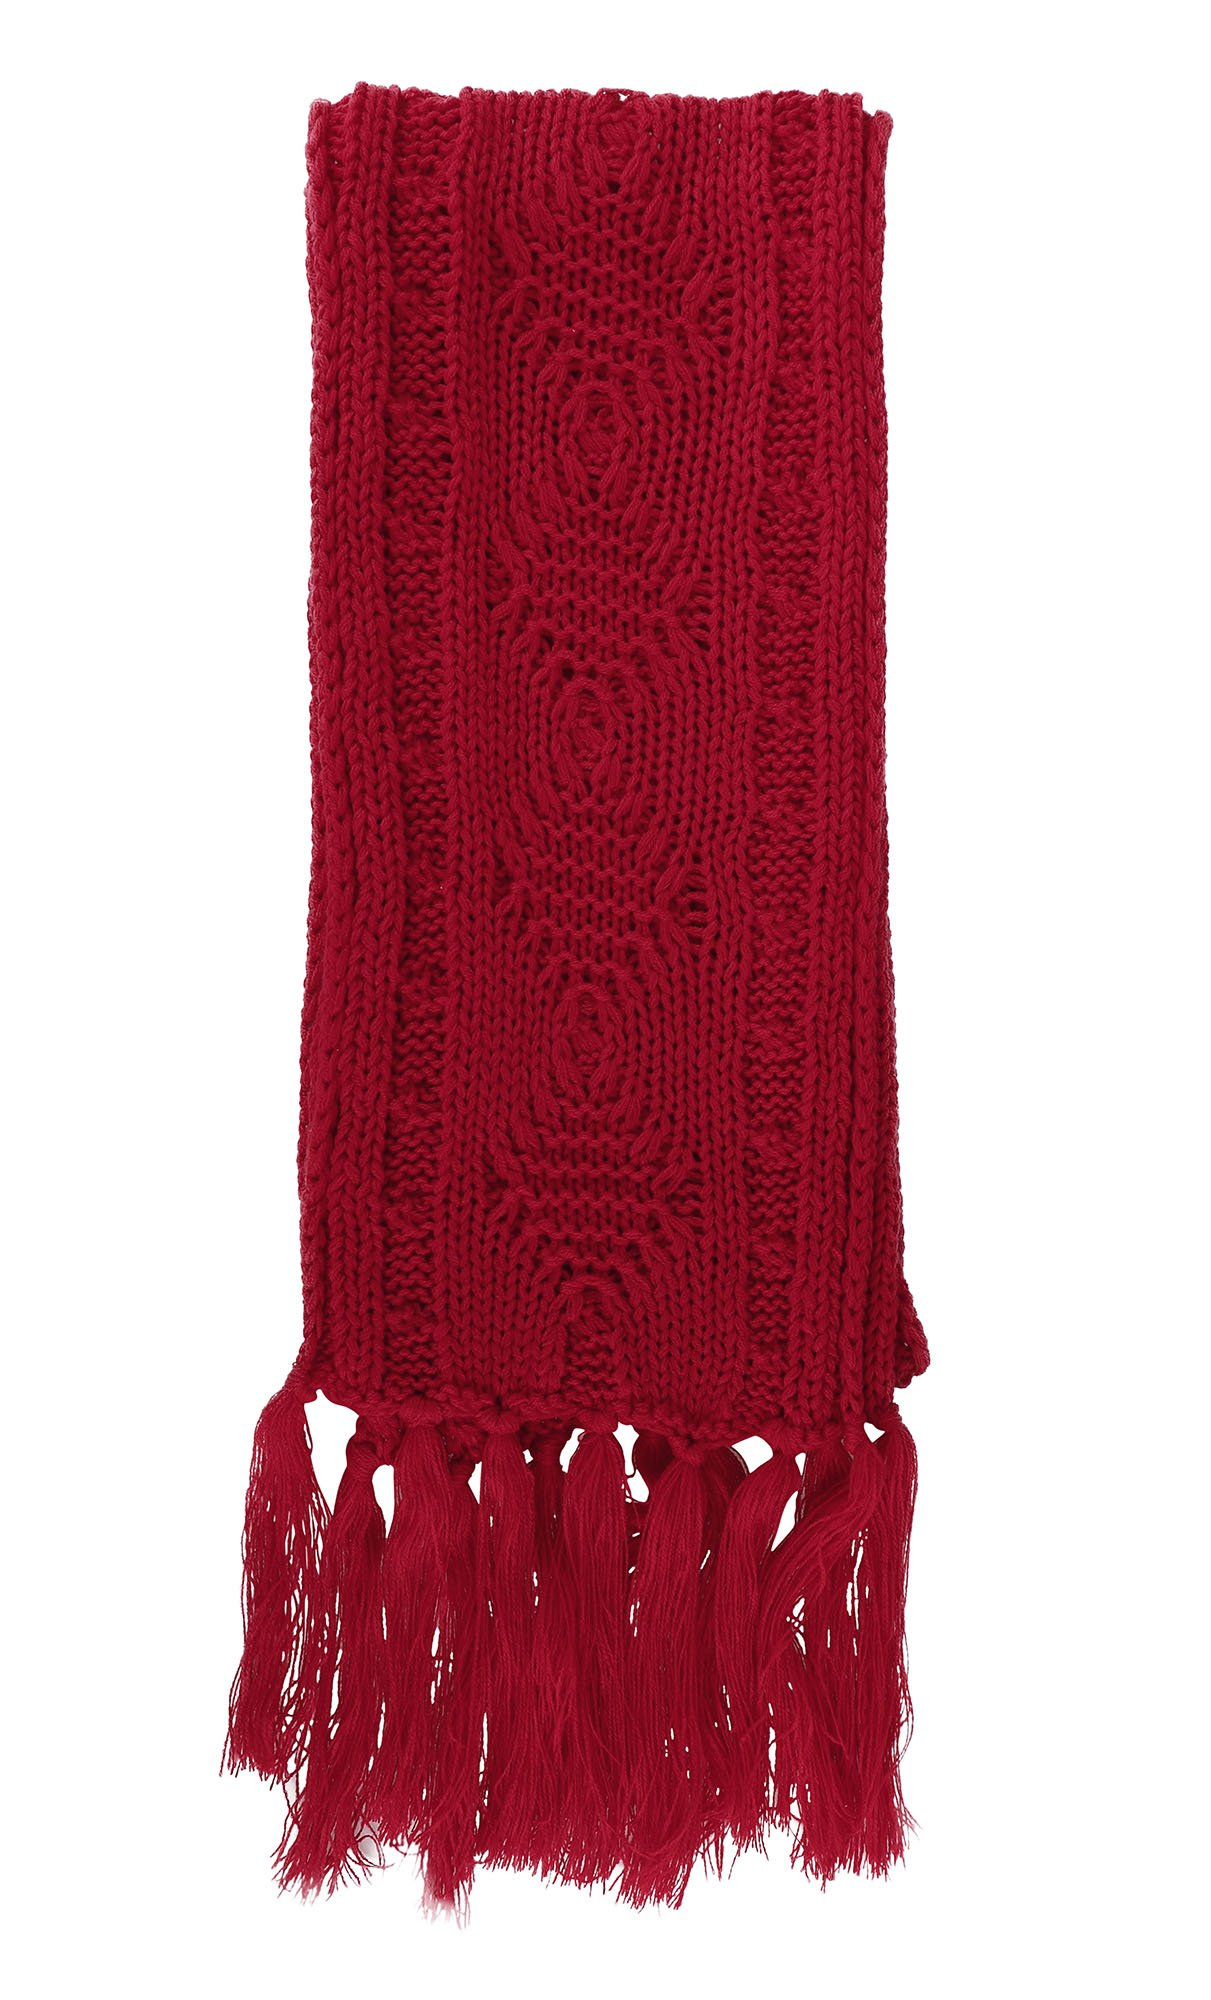 ANDORRA - 3 in 1 - Soft Warm Thick Cable Hat Scarf & Gloves Winter Set, Red by Andorra (Image #6)